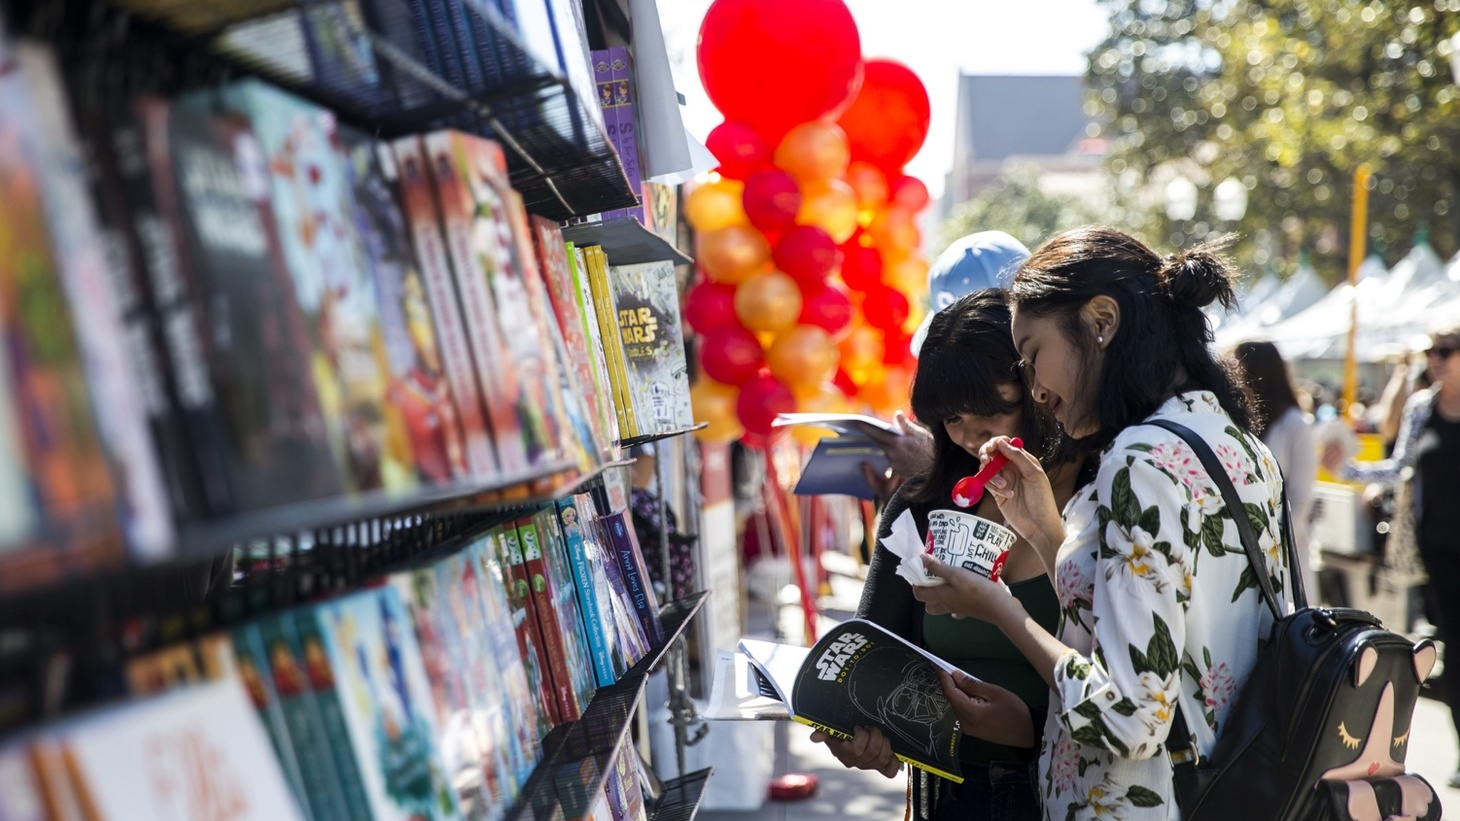 Elisa Sifuentes, 16, and Kaitlyn Bin, 16, browse displays of books at the L.A. Times Festival of Books on the USC campus in 2018. This year's festival is going all online.